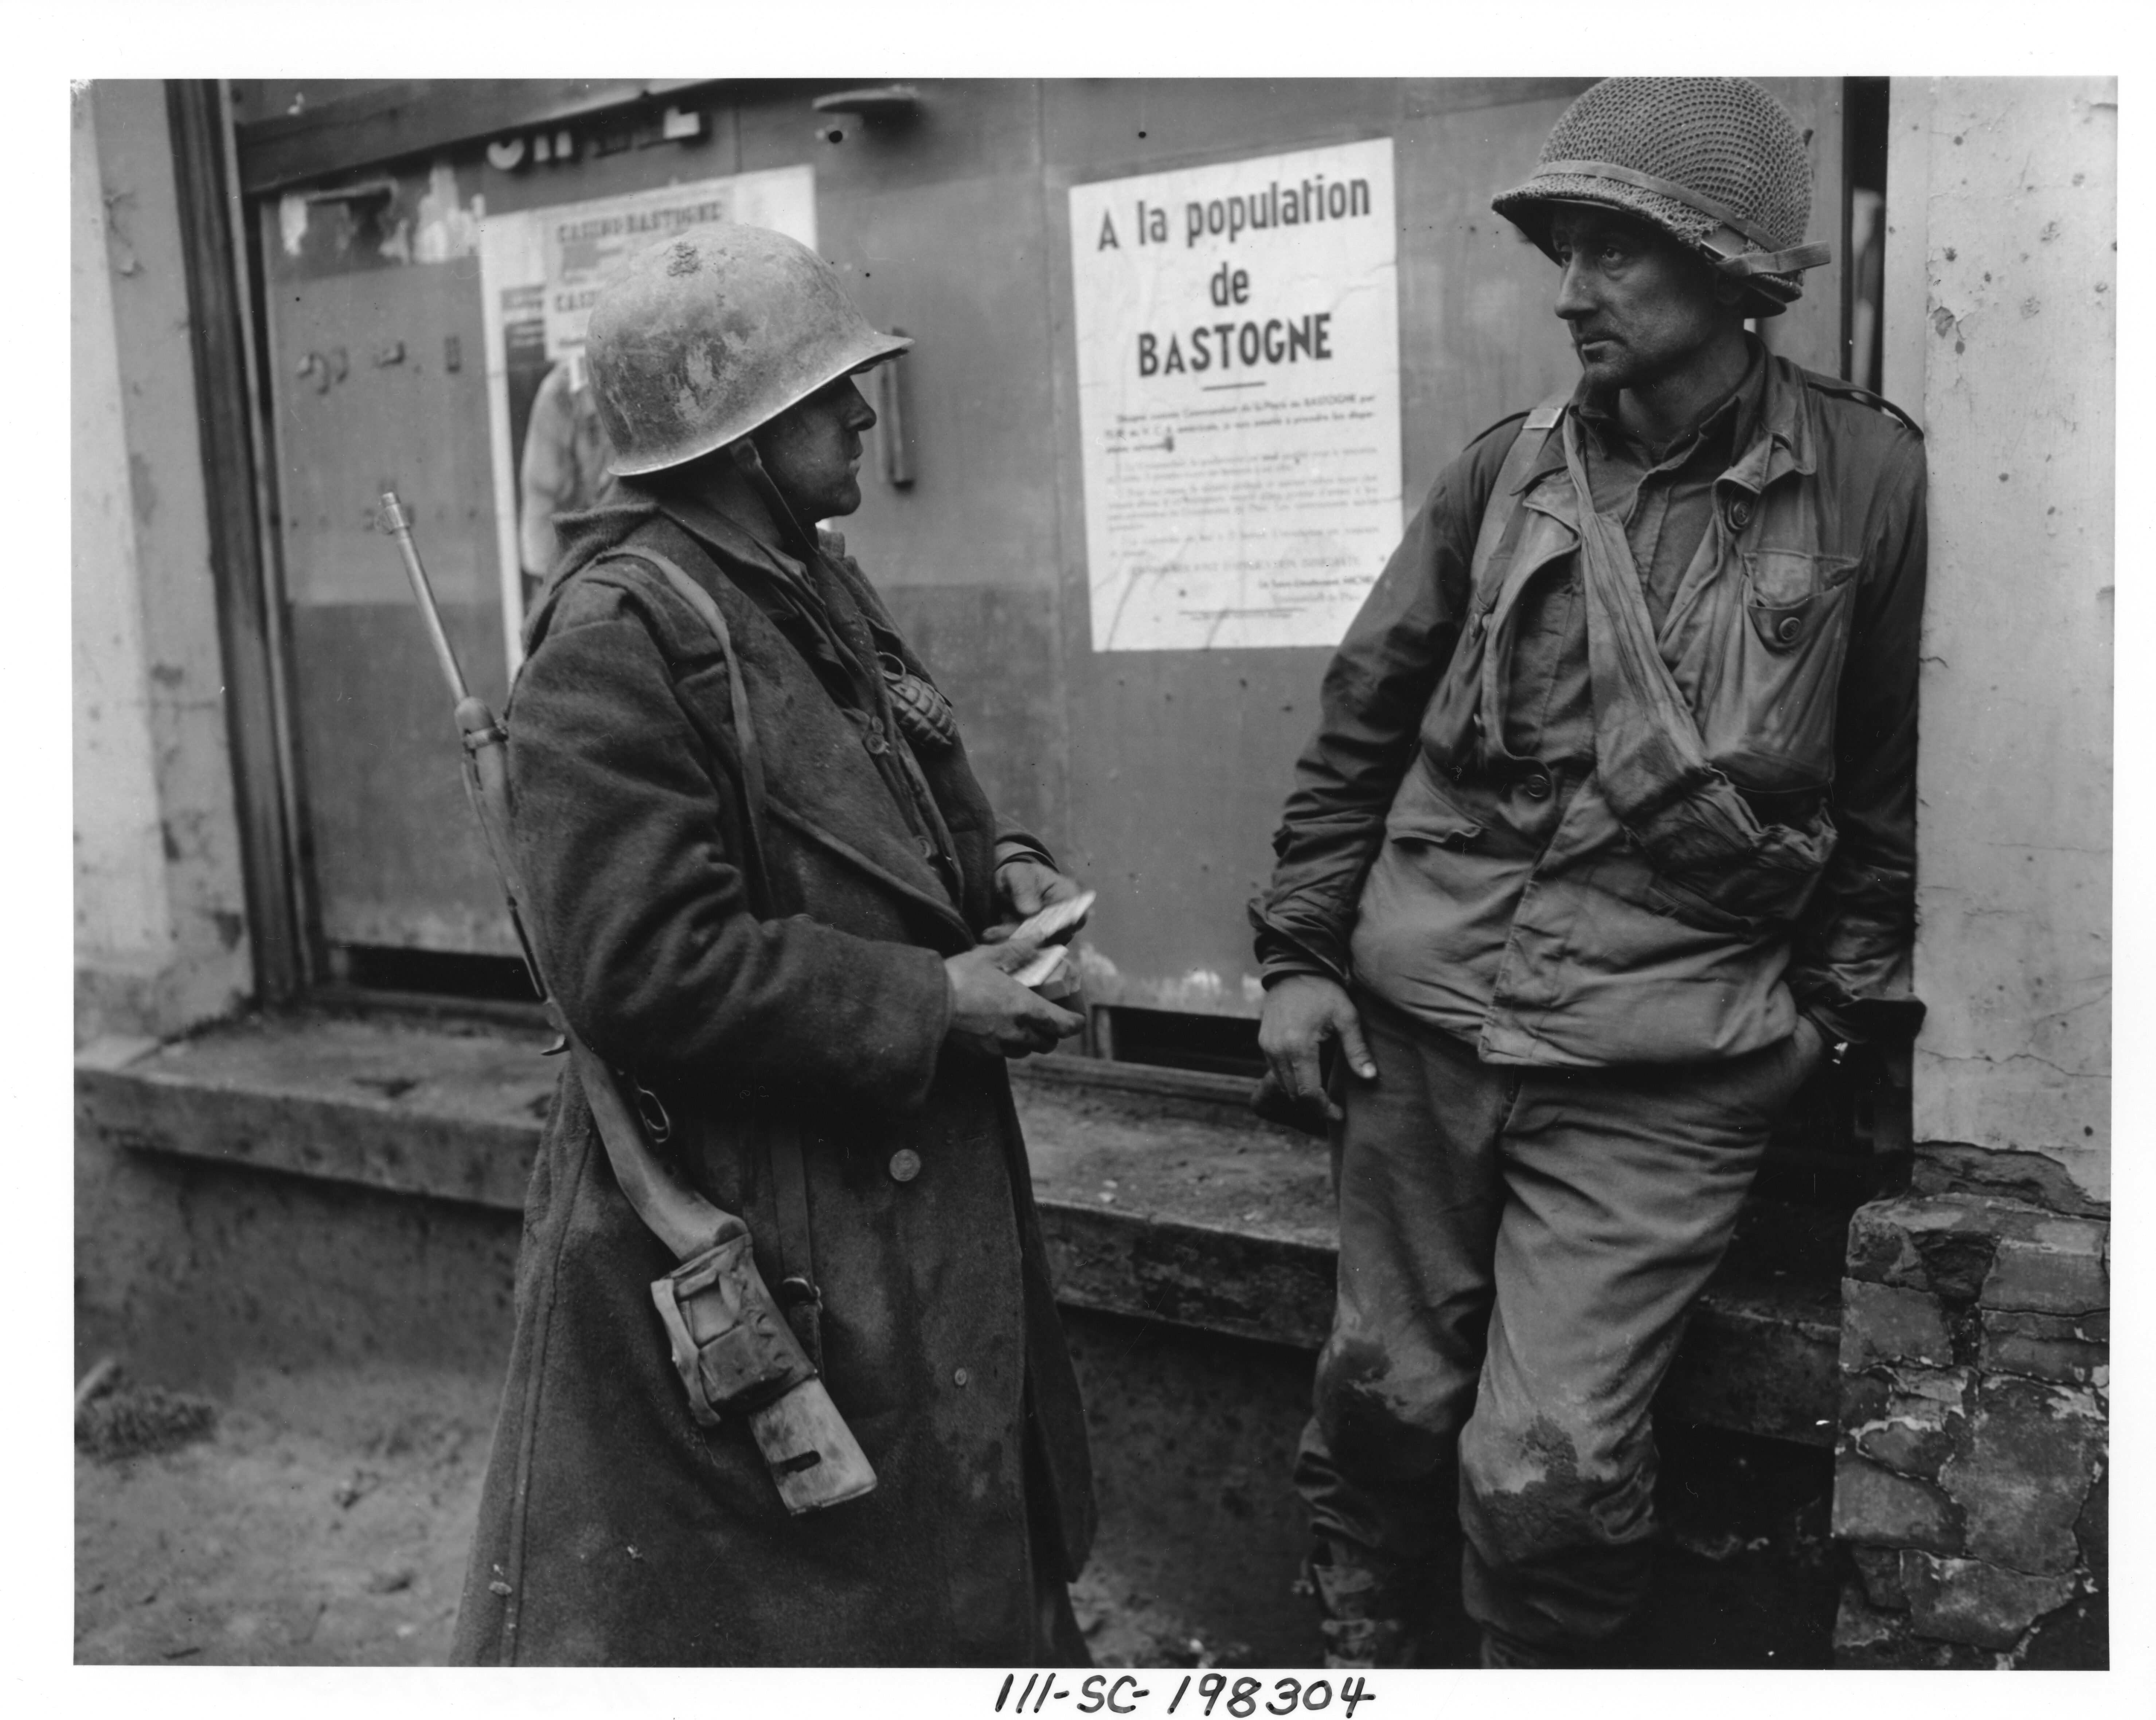 Original caption: Bastogne, Belgium-Weary infantrymen of the 110th Regt., 28th Div., US 1st Army following the German breakthrough in that area. The enemy overran their battalion. (L-R) Pvt. Adam H. Davis and T/S Milford A. Sillars. Dec. 19, 1944